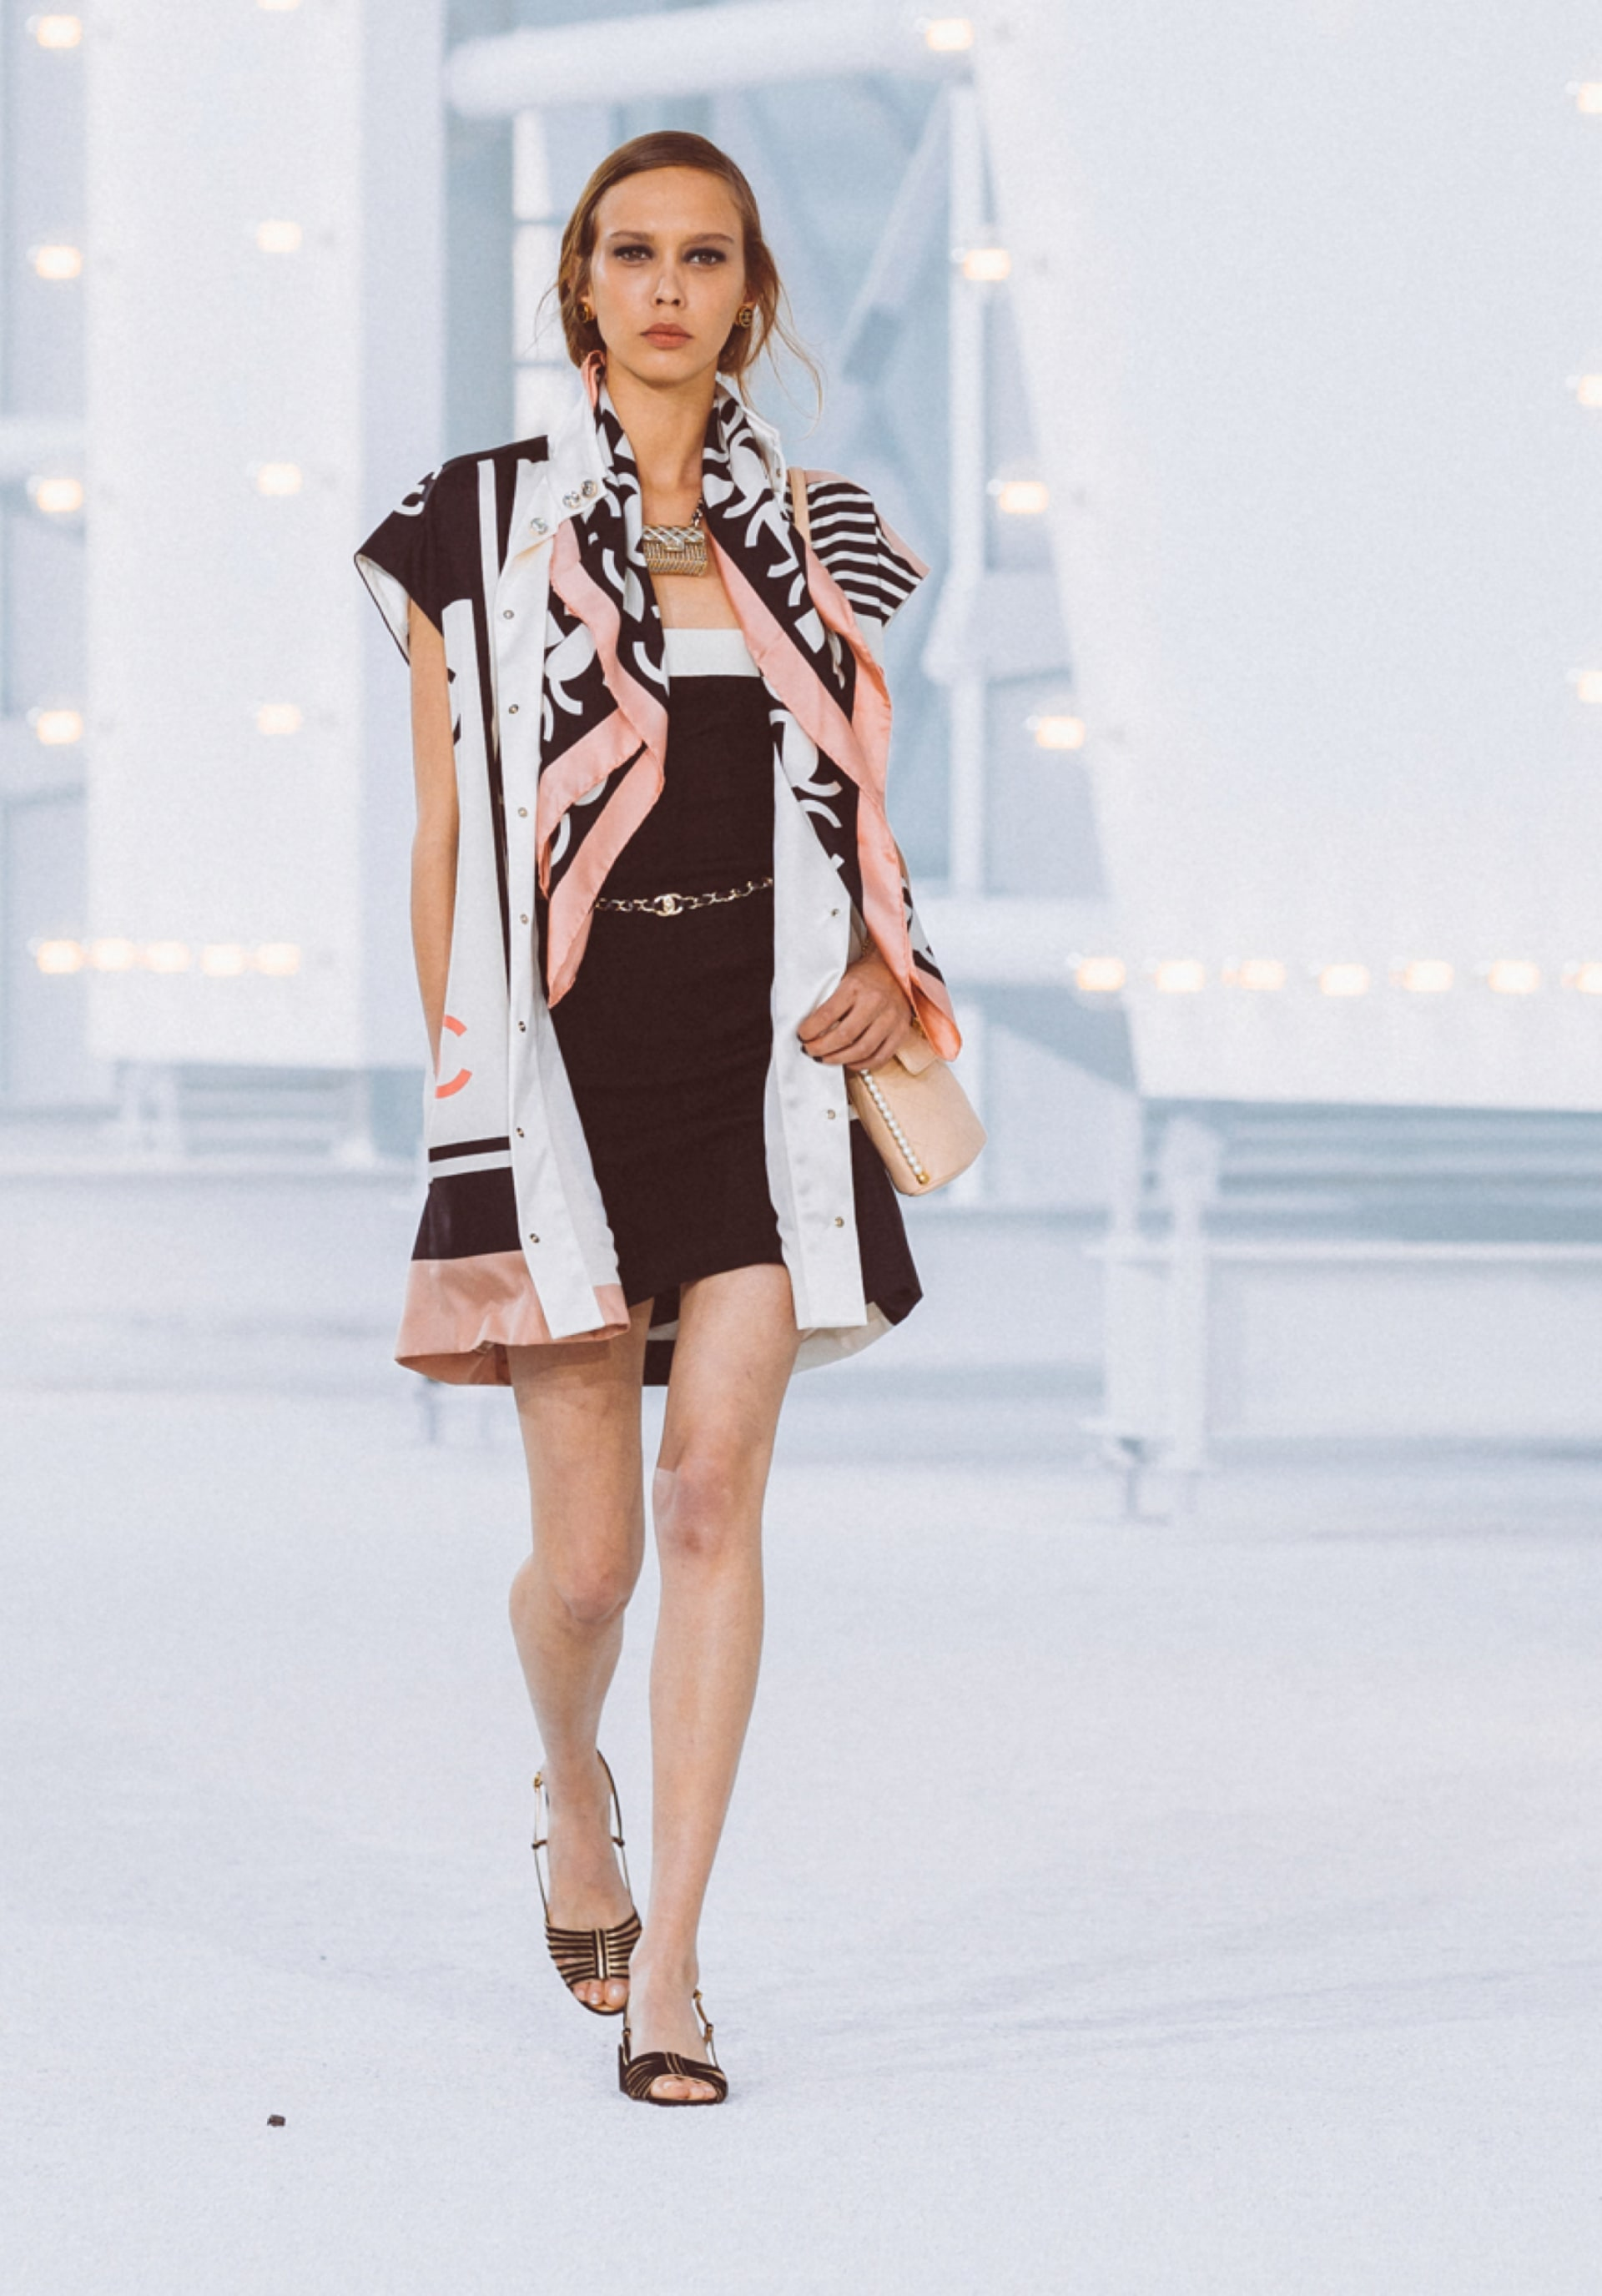 View 1 - Look39 - Spring-Summer 2021 - see full sized version